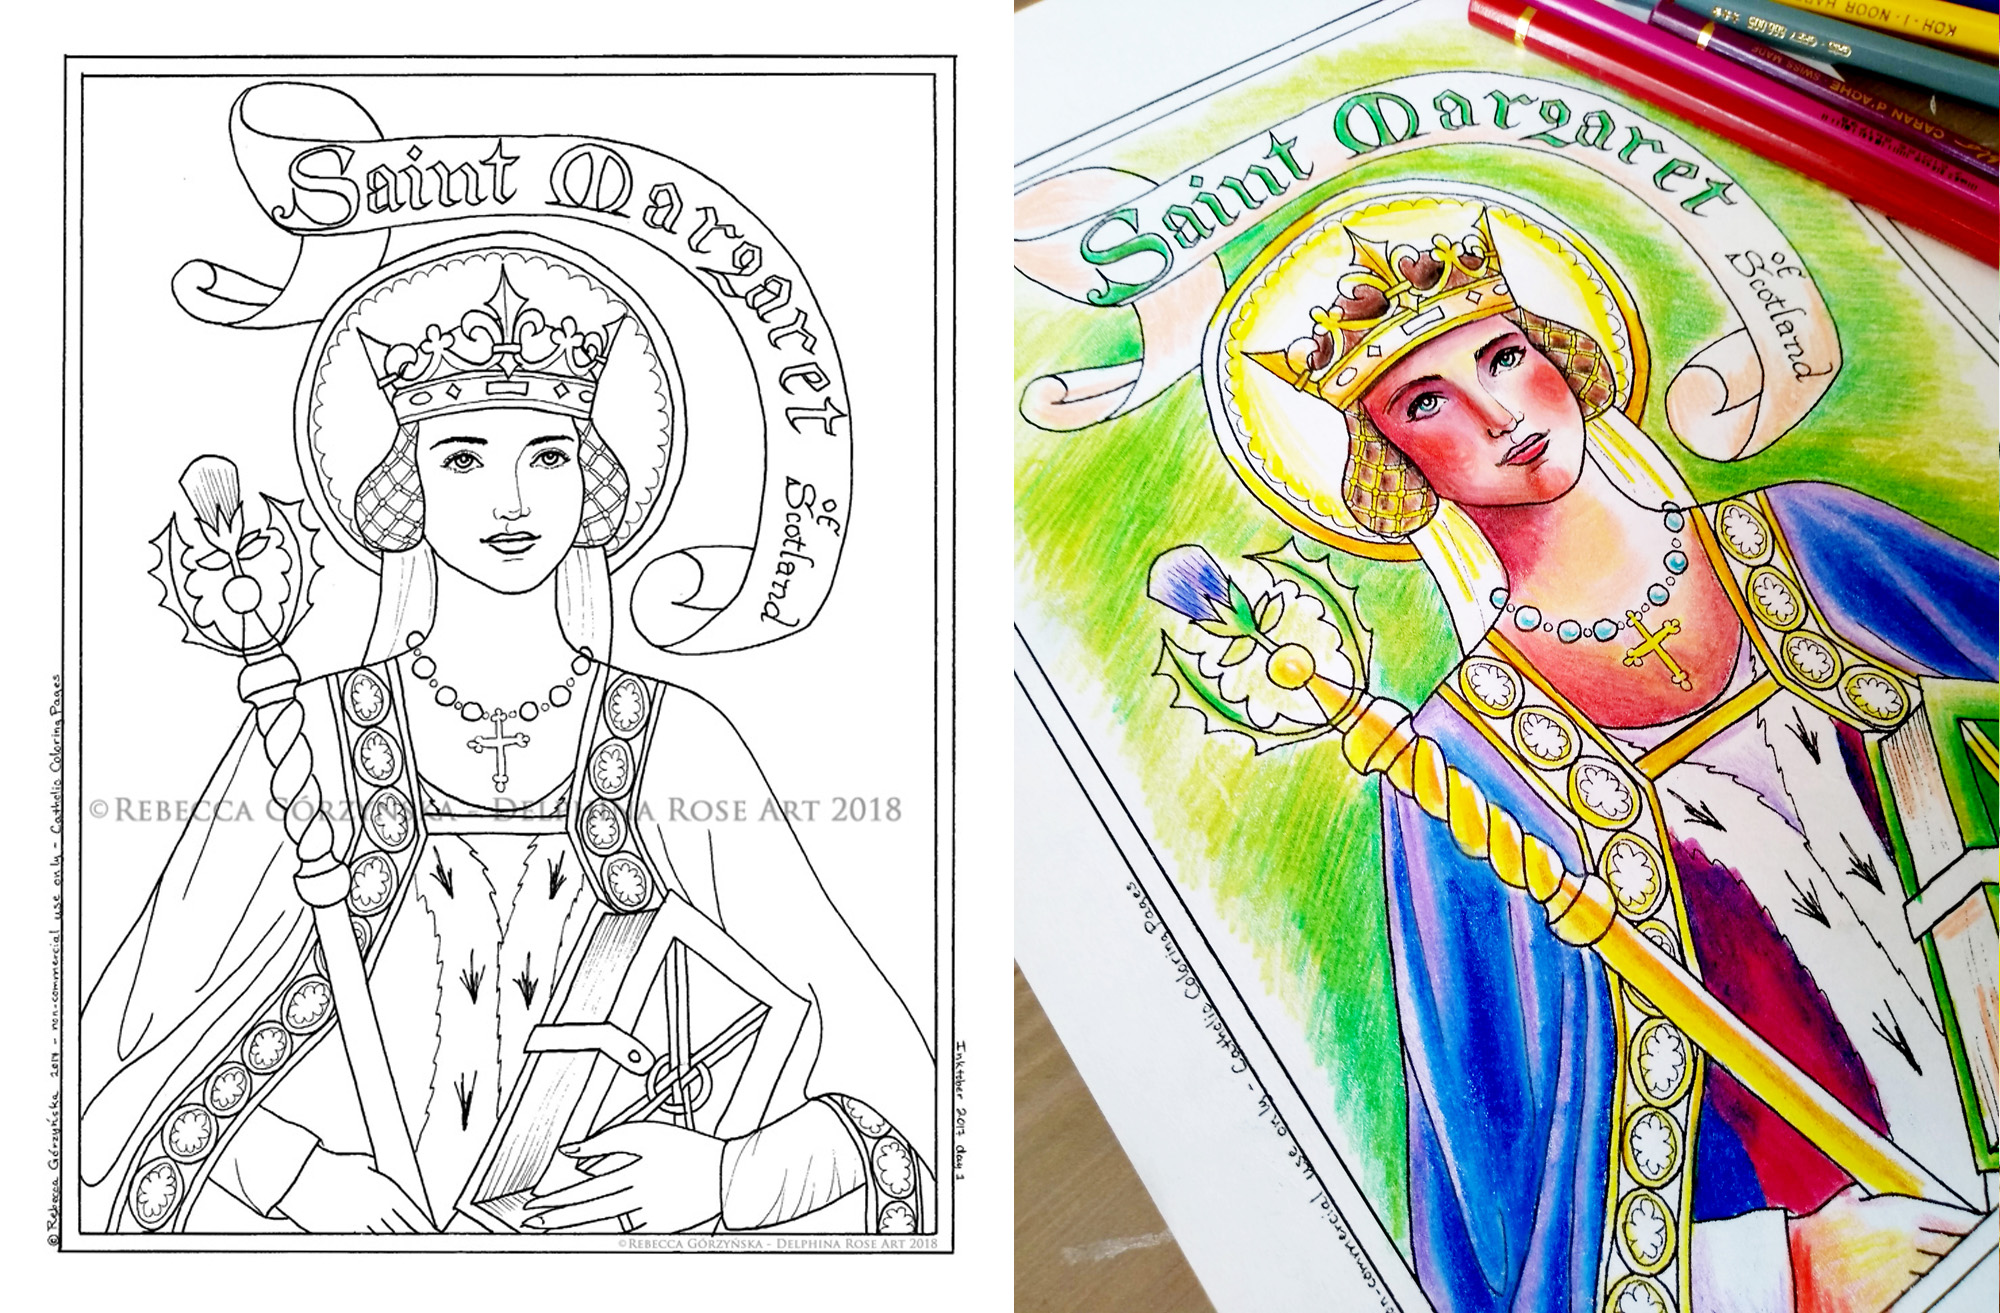 Pin by Mignonne Swilling on Coloring | Castle coloring page, Coloring  books, Dover publications | 1313x2000